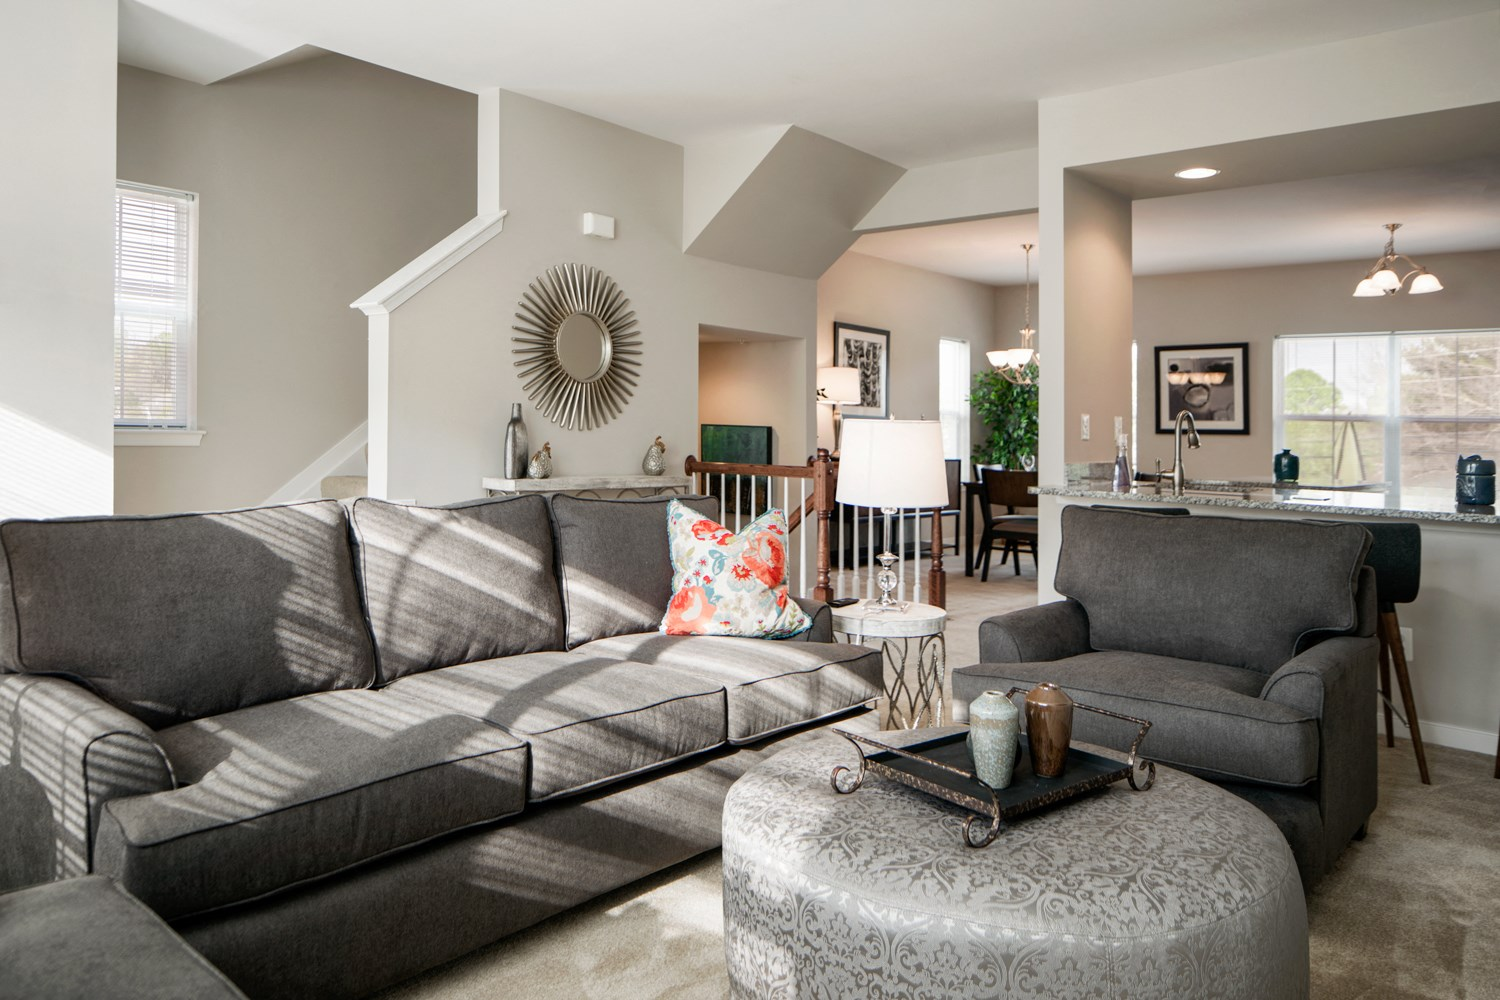 Newly Renovated Living Room at Townes at Pine Orchard, Ellicott City